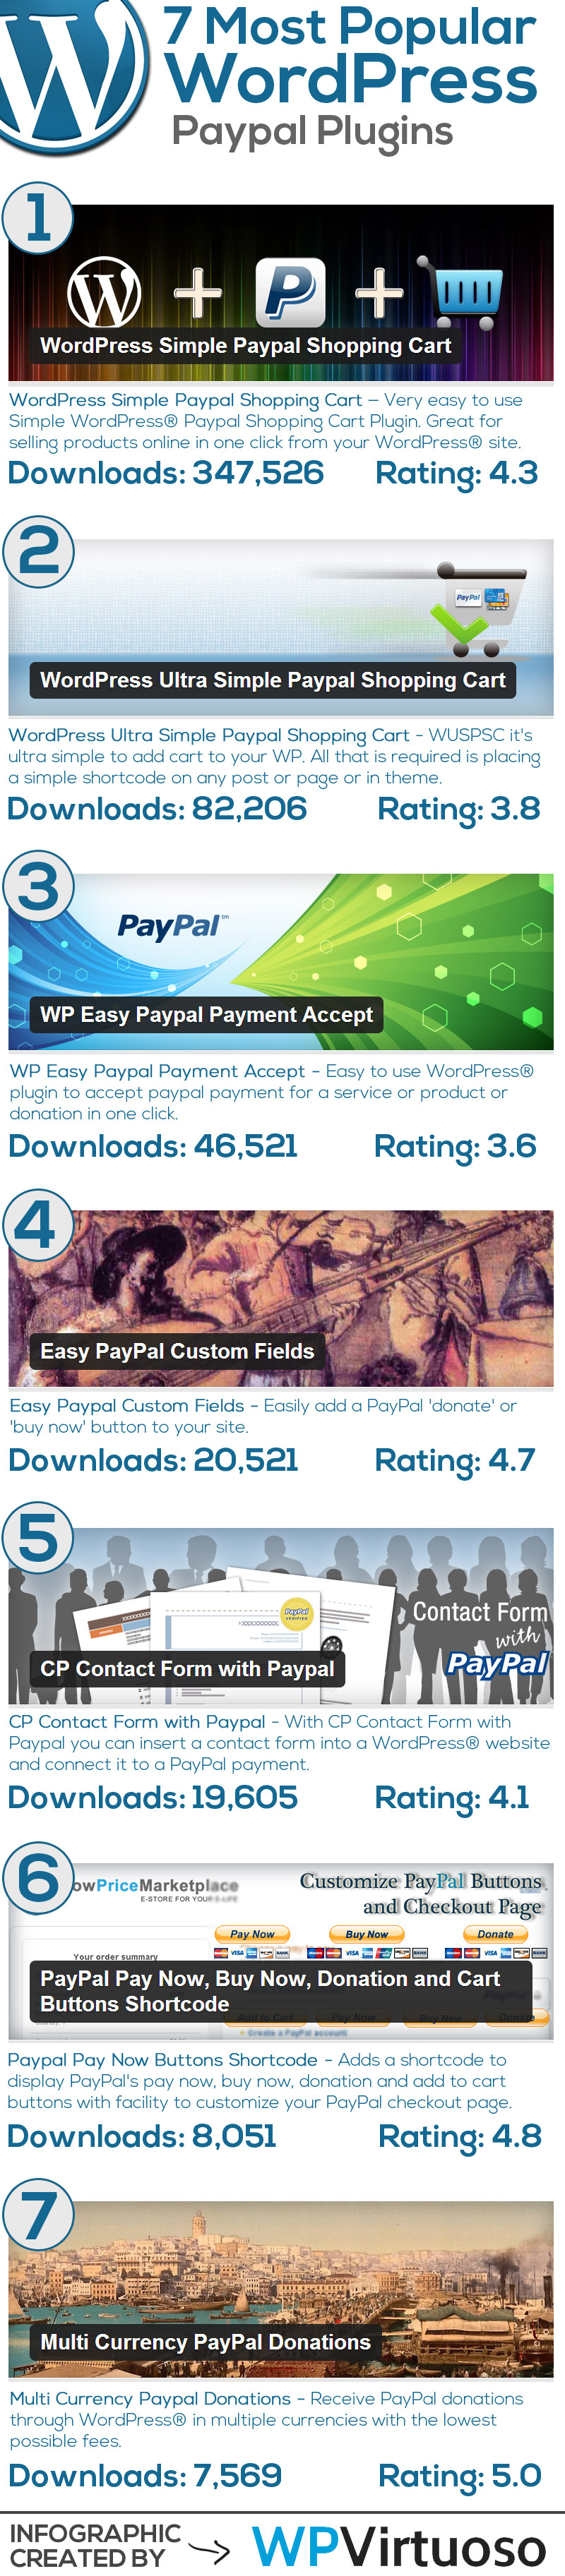 Best-Wordpress-Paypal-Plugins-Infographic